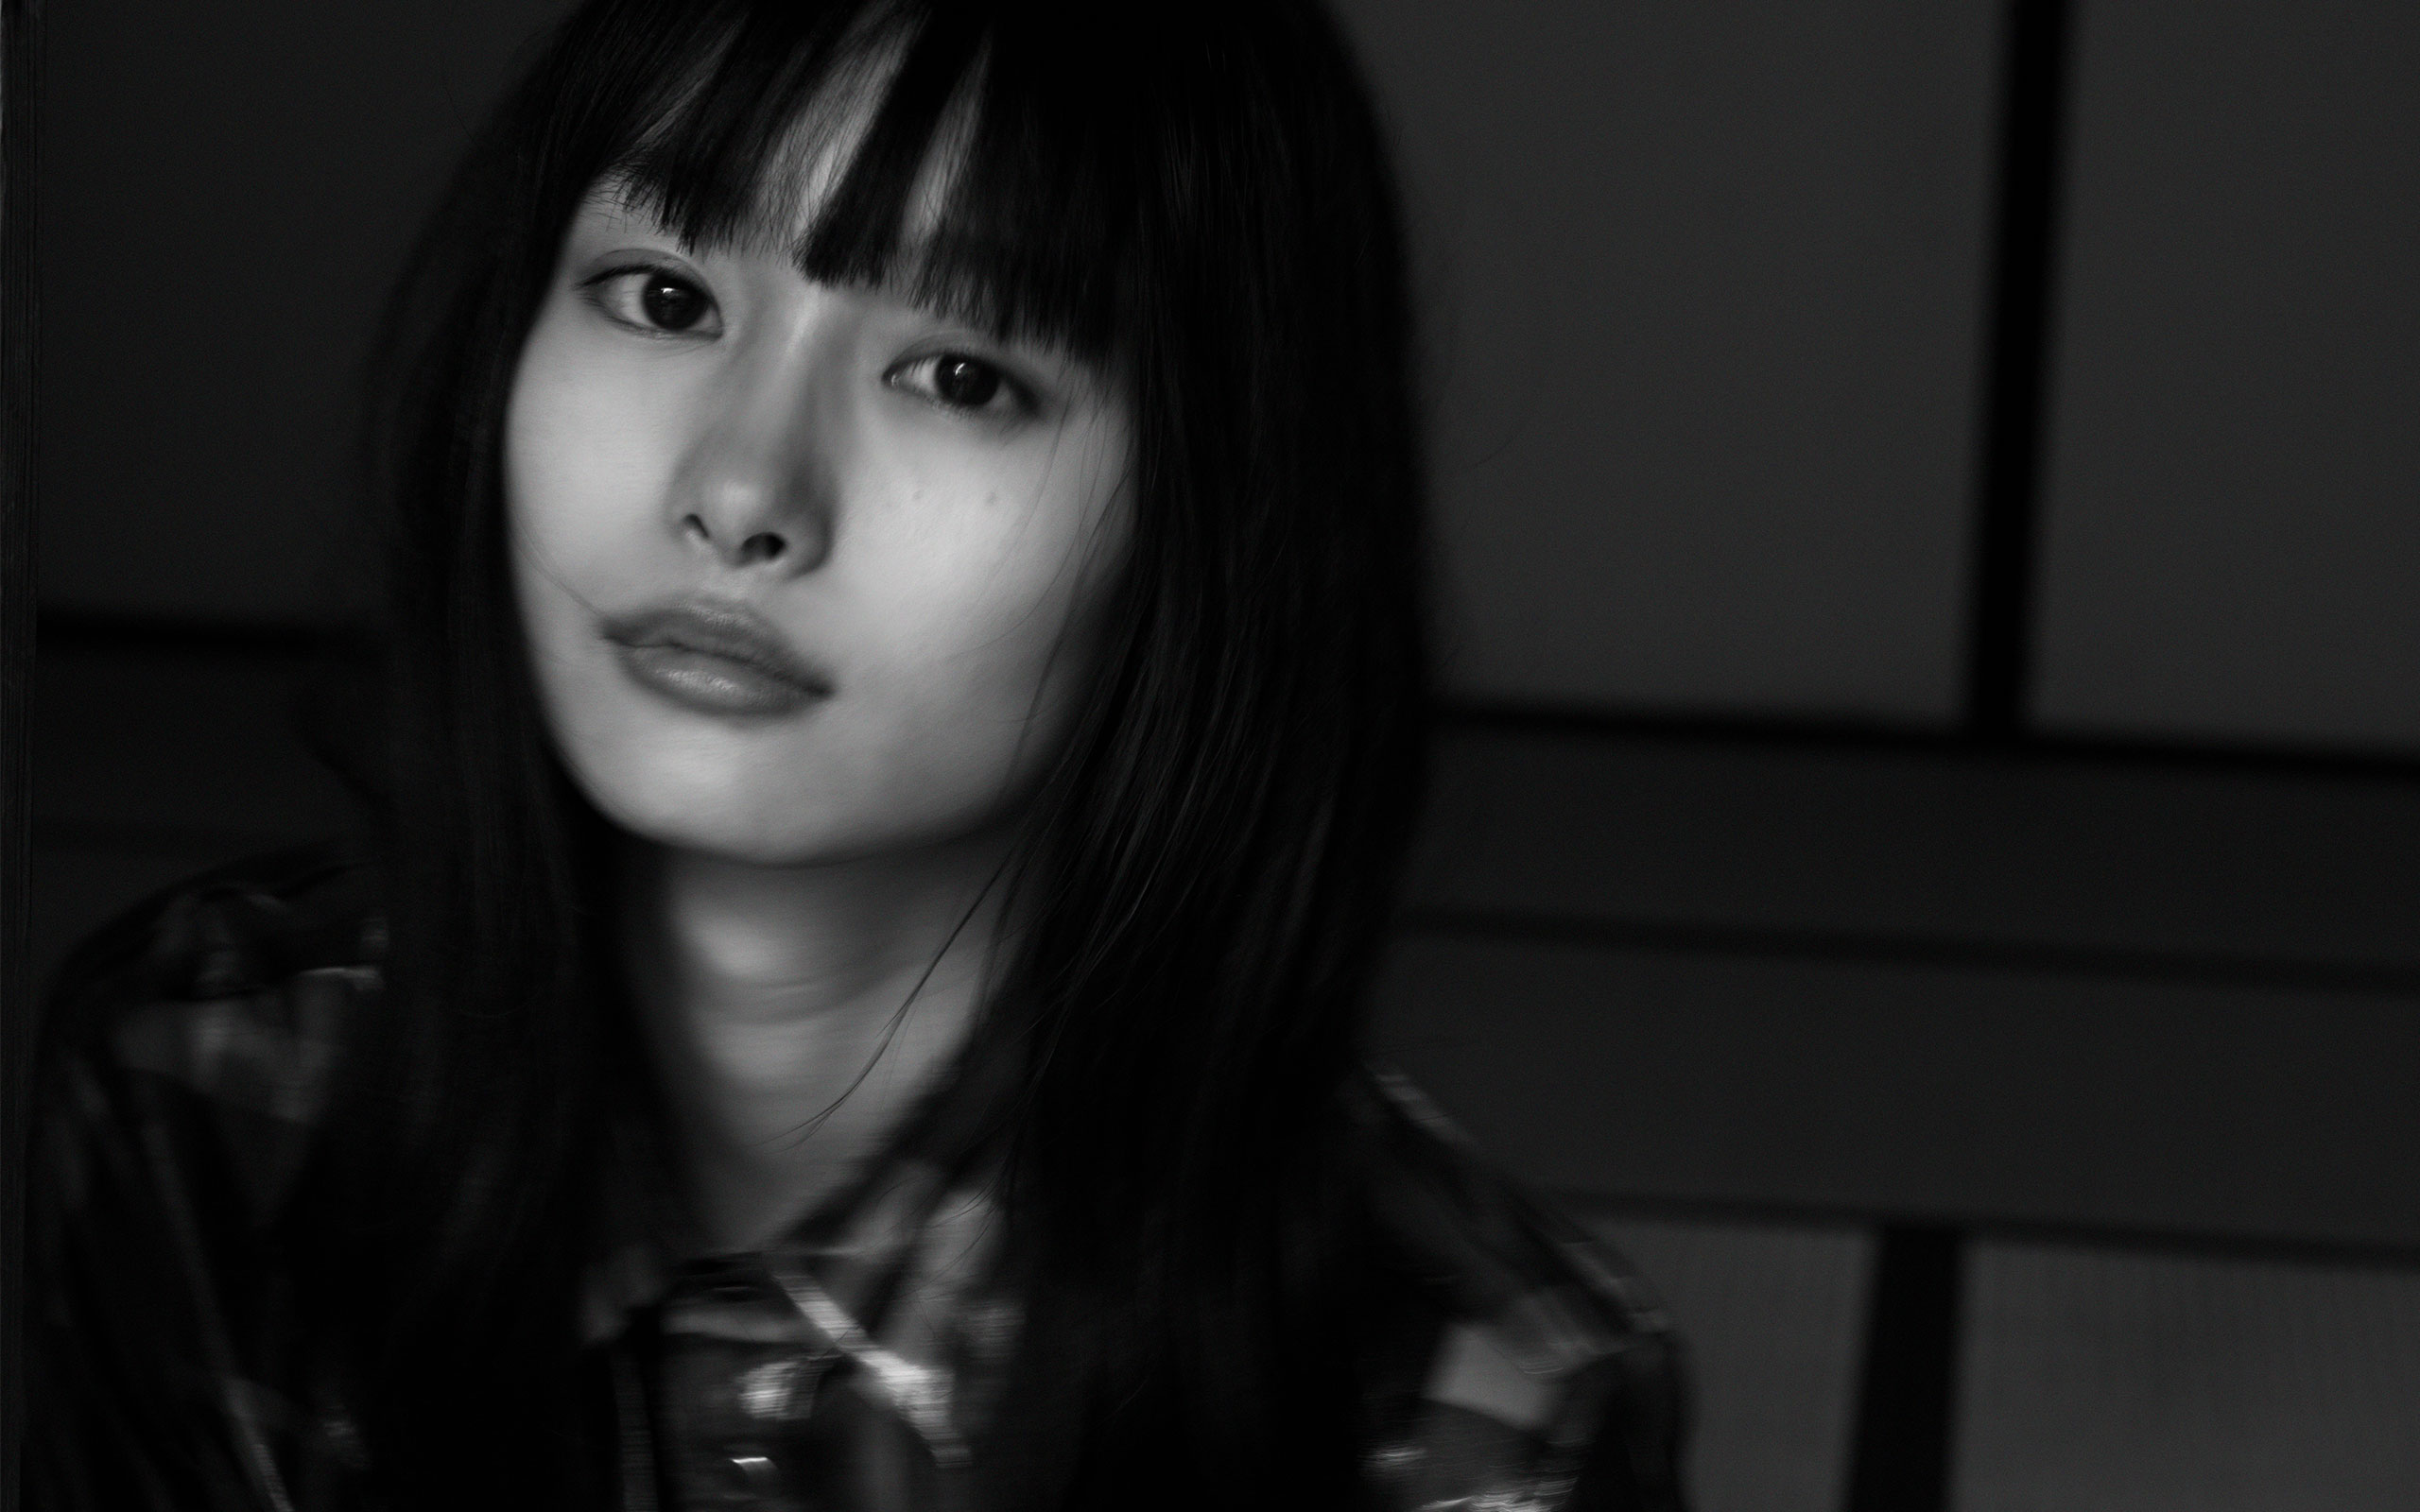 Interview with Shioli Kutsuna